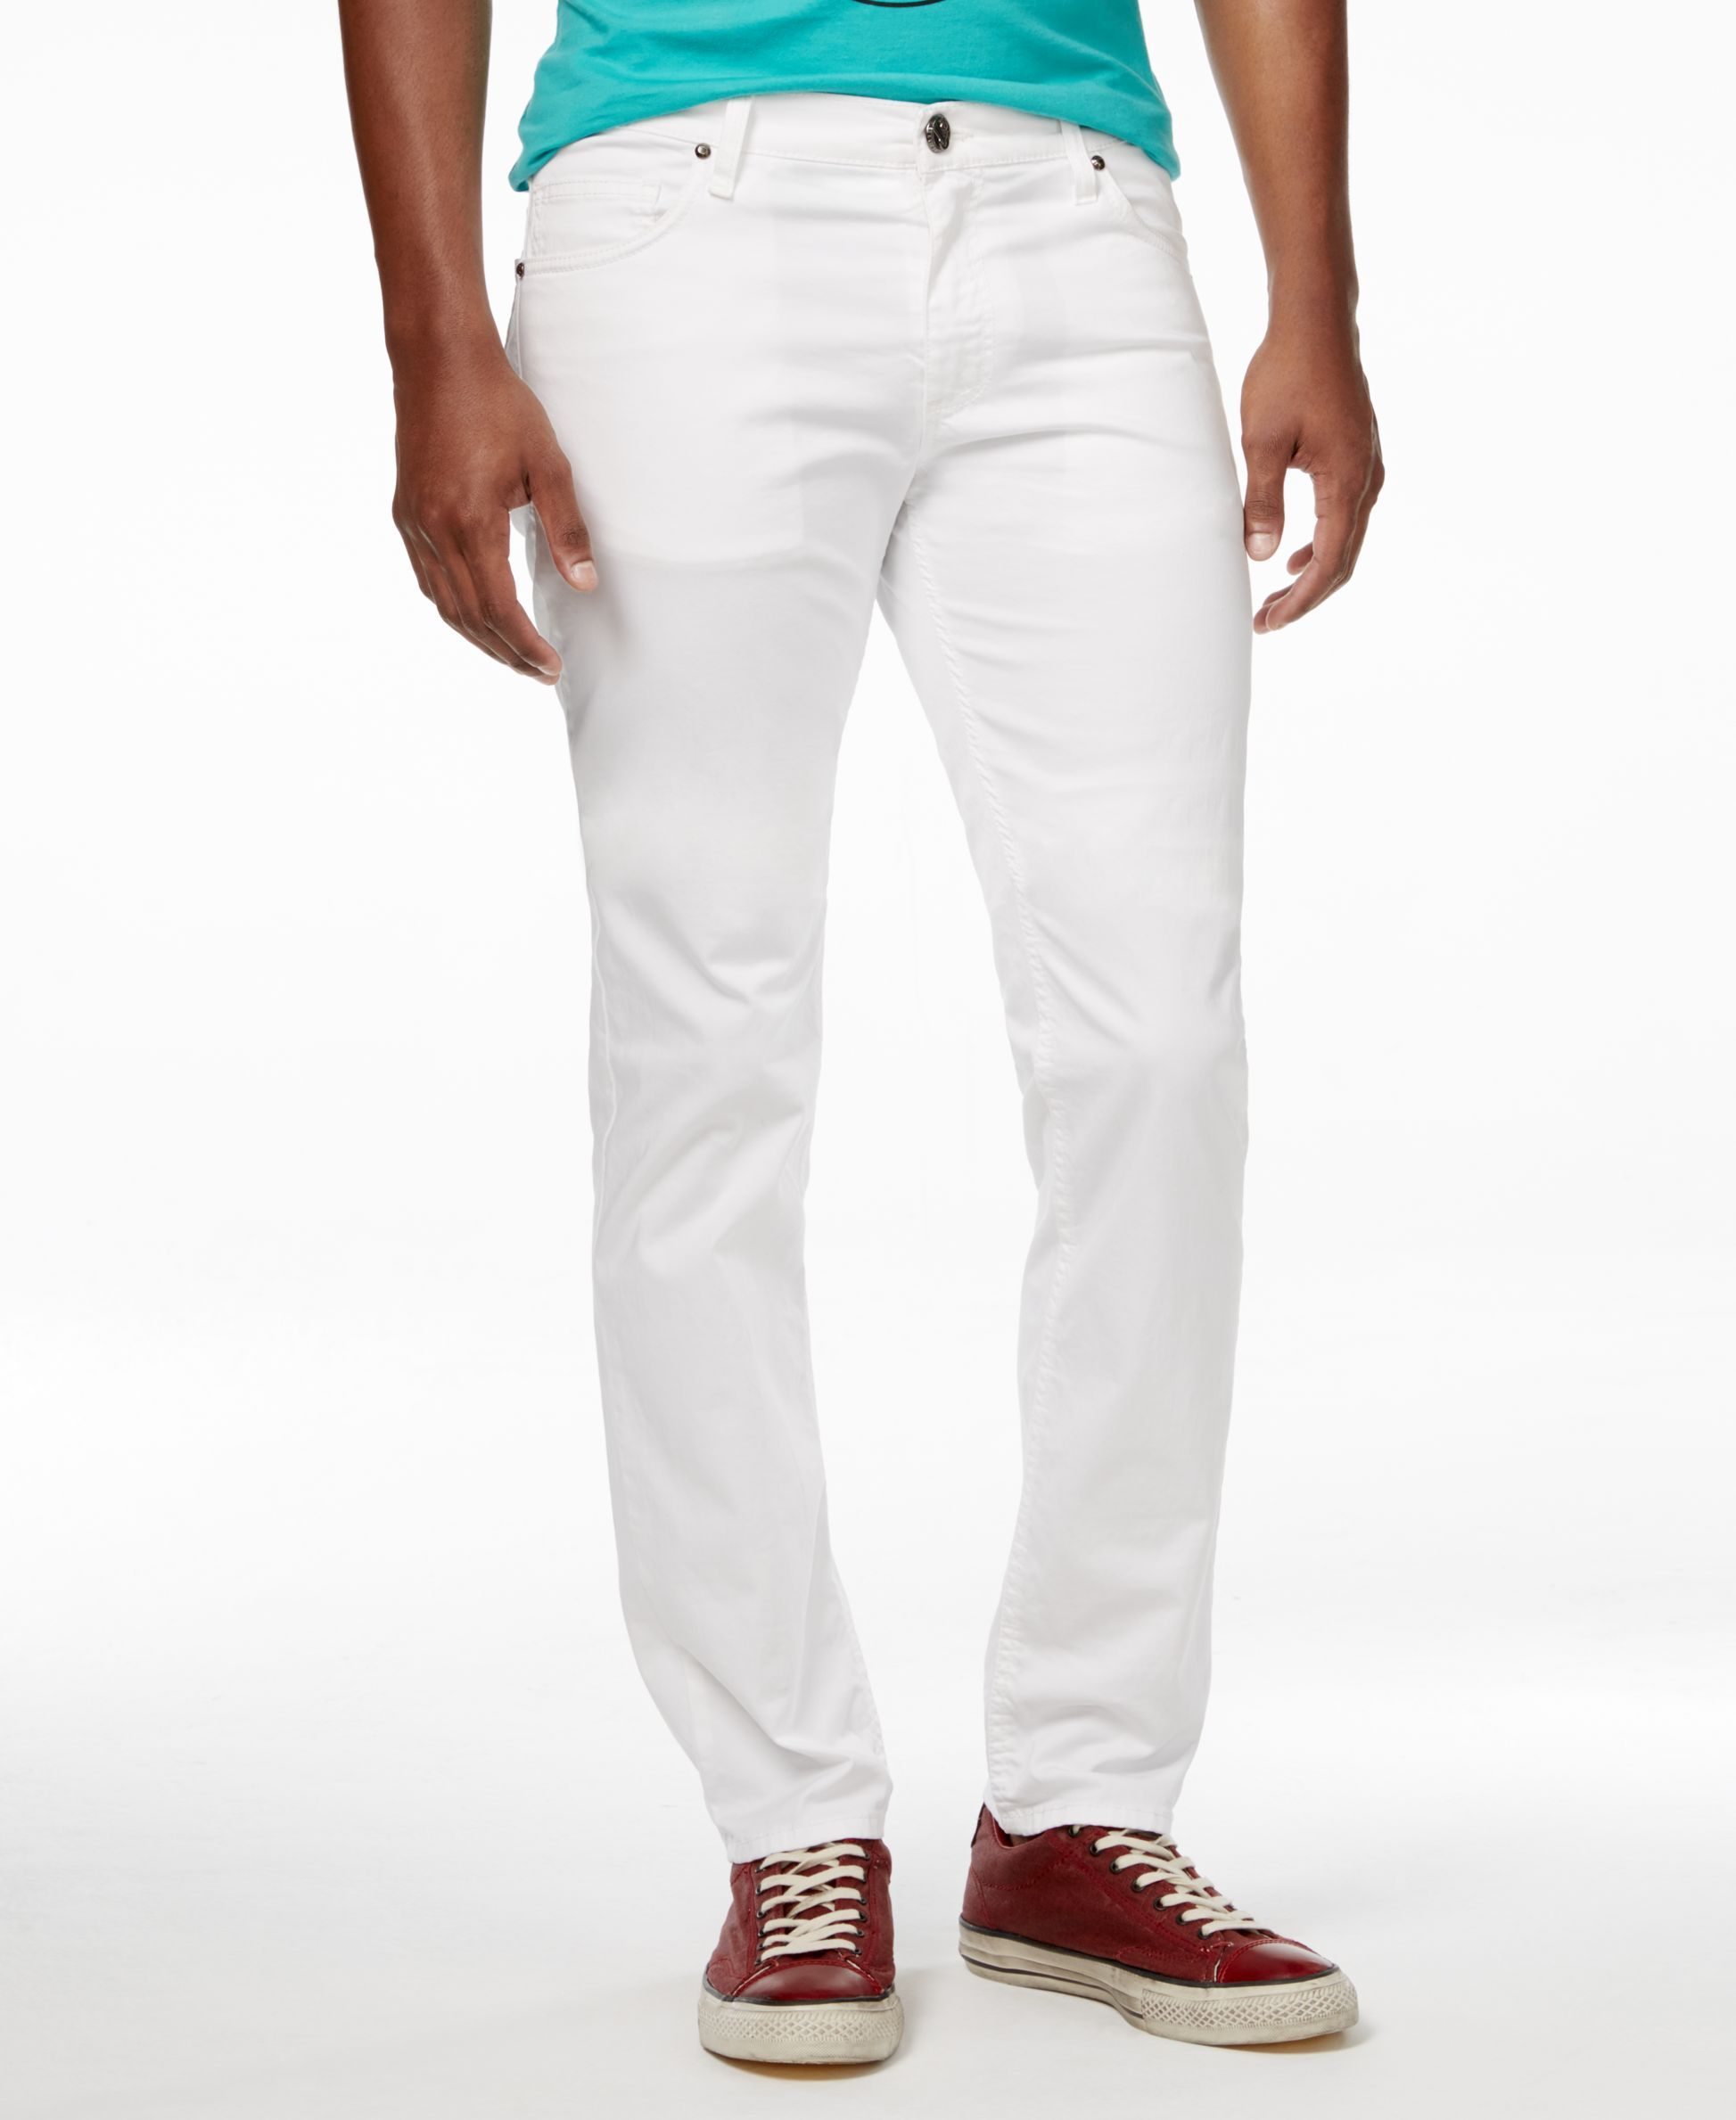 8750c84e25 Versace Men's Slim Fit White Denim Pants | Men's White Pants | Denim ...